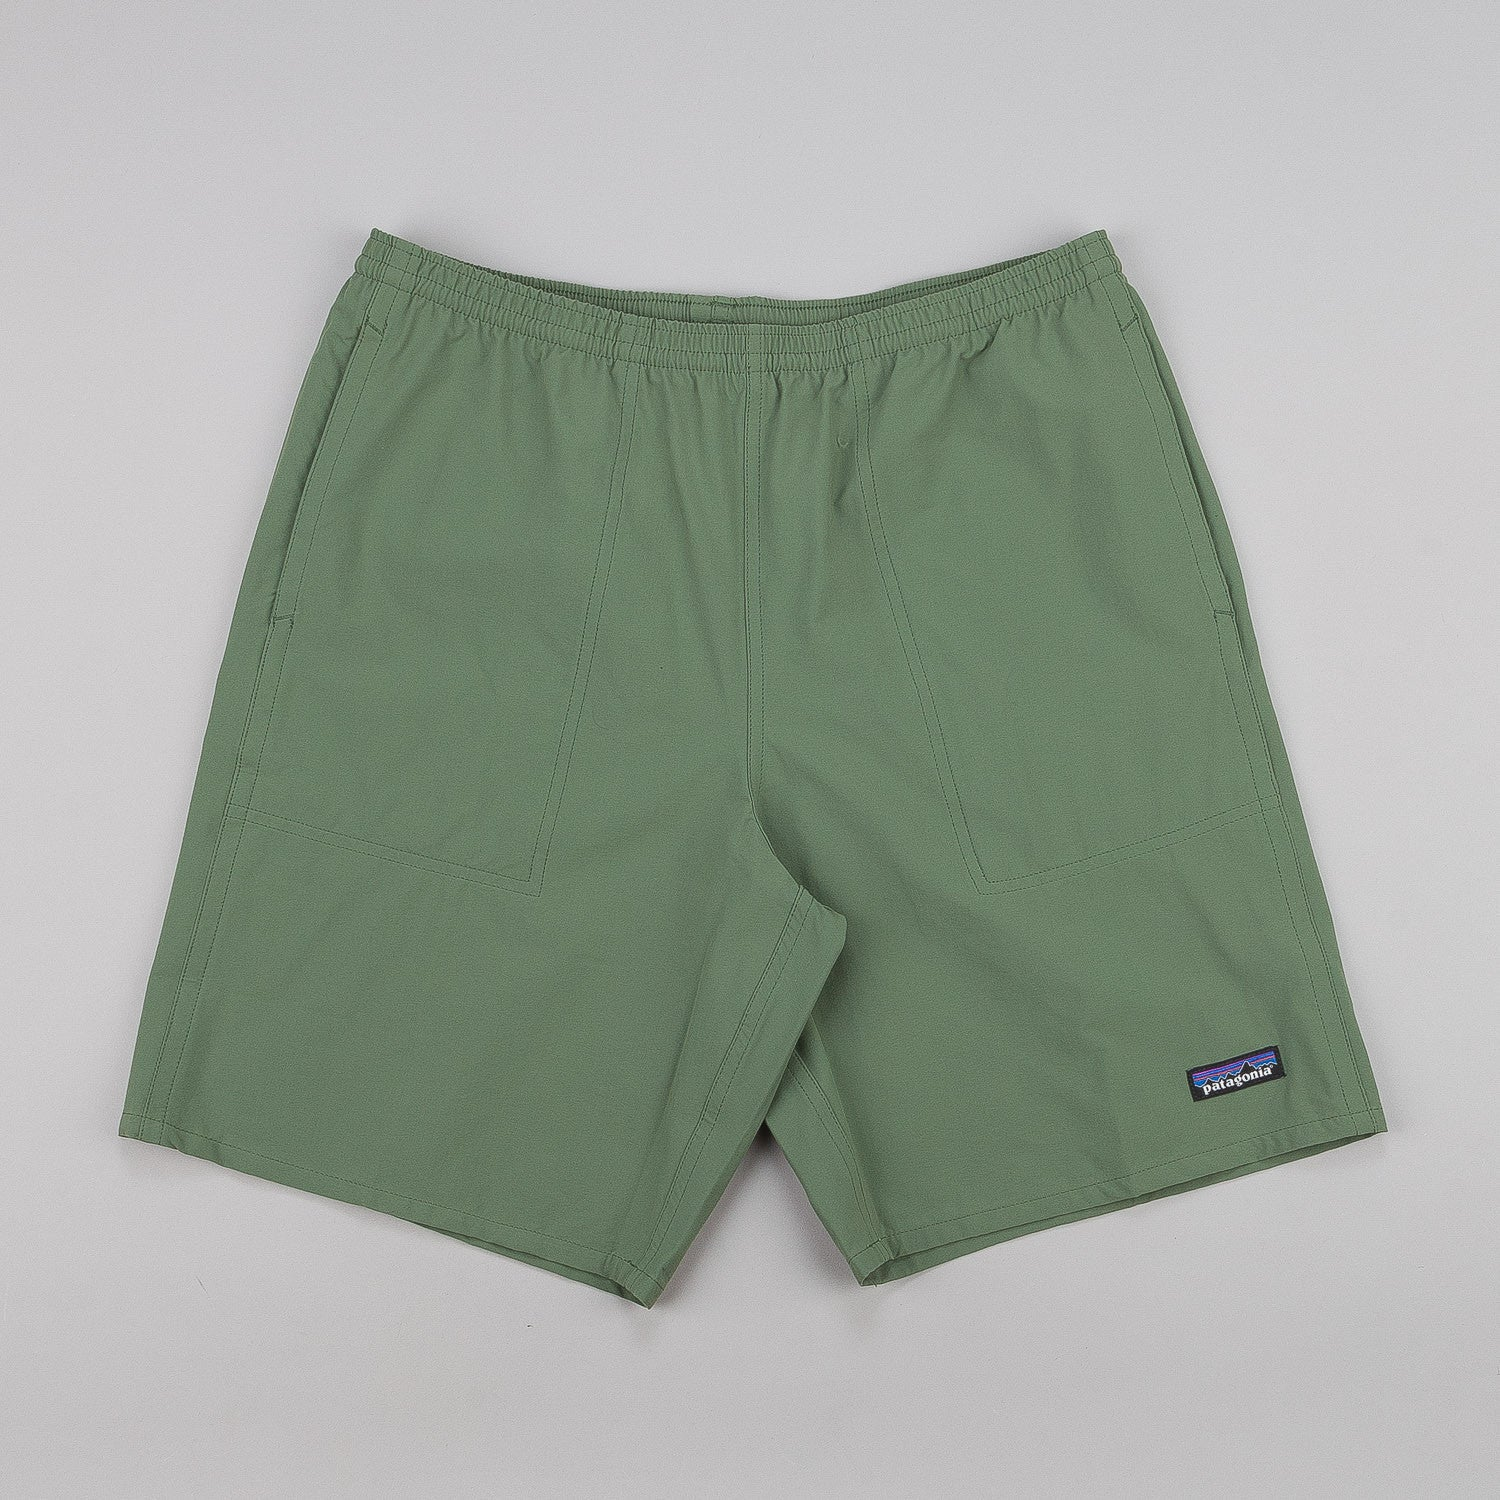 Patagonia Baggies Stretch Shorts 9""